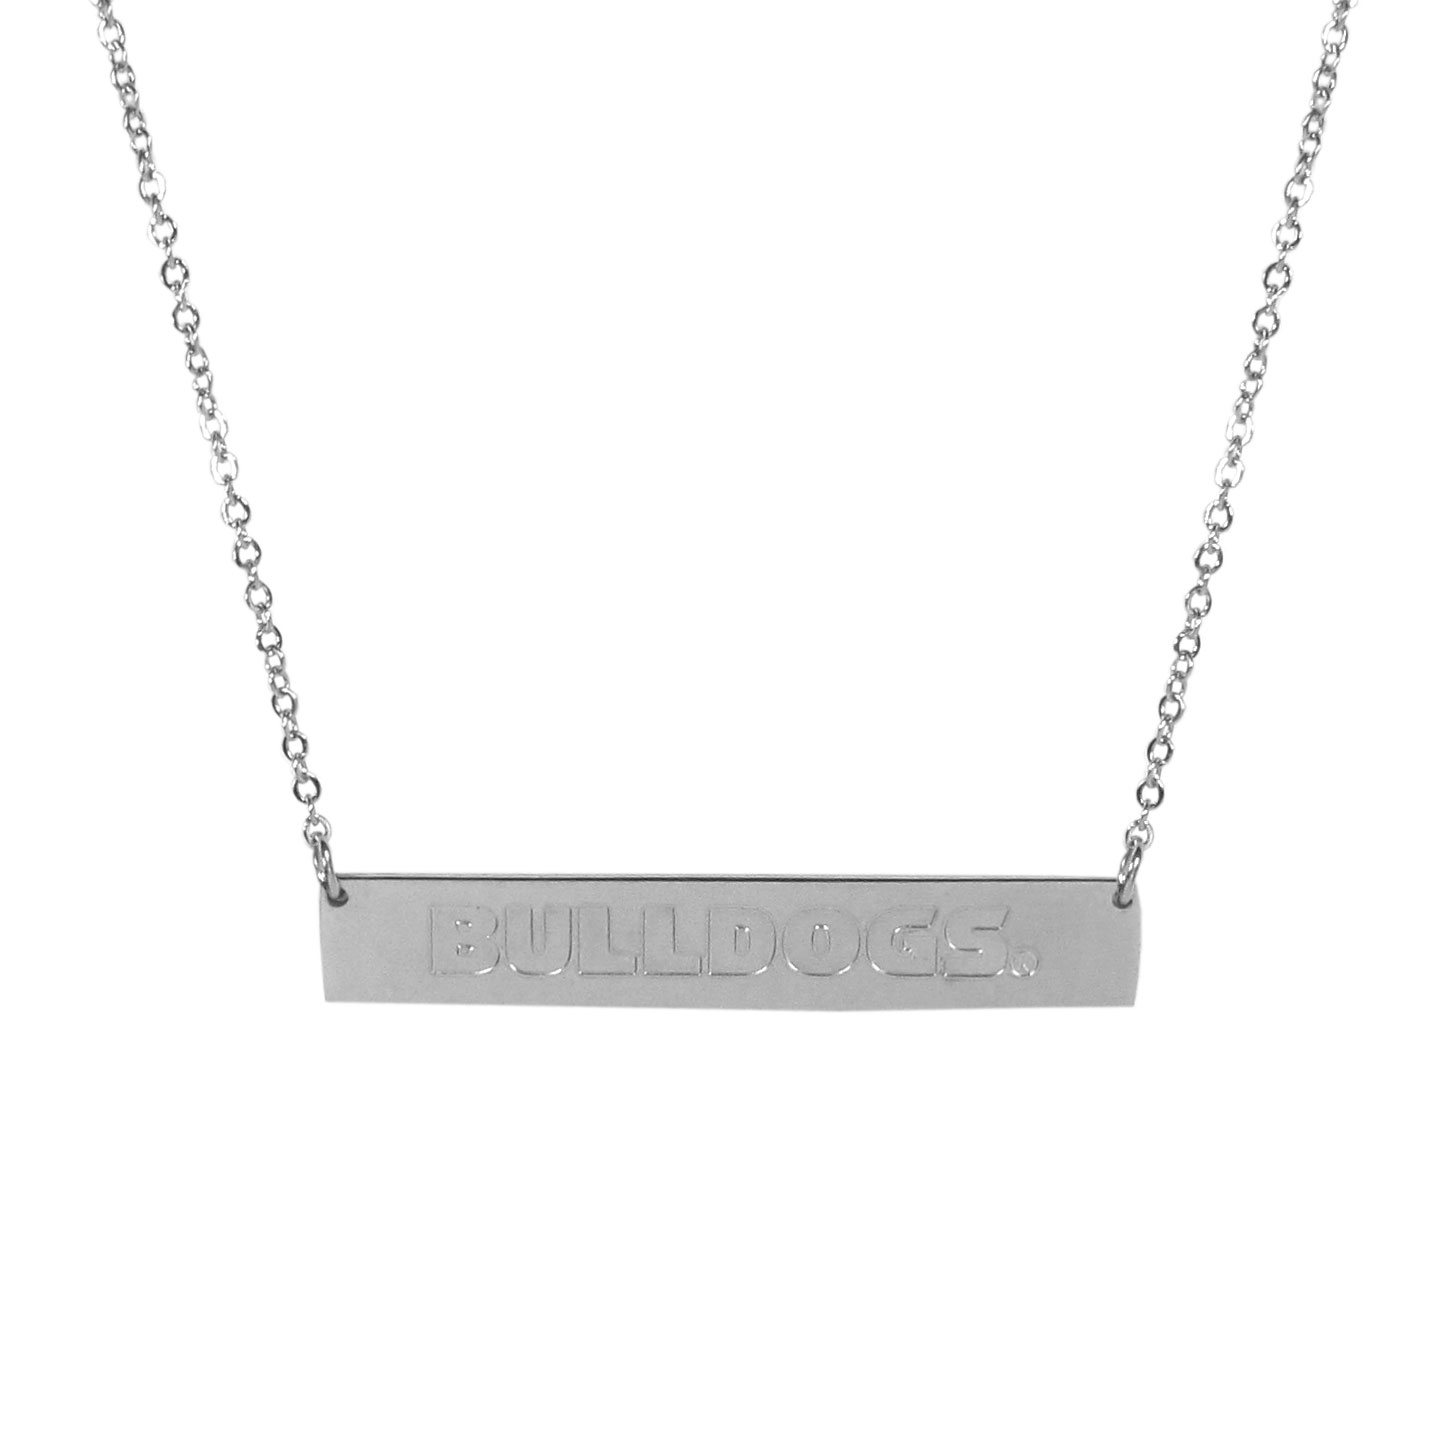 Georgia Bulldogs Bar Necklace - Simply beautiful Georgia Bulldogs bar necklace on a 20 inch link chain with 2 inch adjustable extender. This light-weight bar necklace has a stylish silver colored finish with the team name expertly etched on the 1.5 inch bar. Every female  fan will enjoy this contempory fashion accessory.